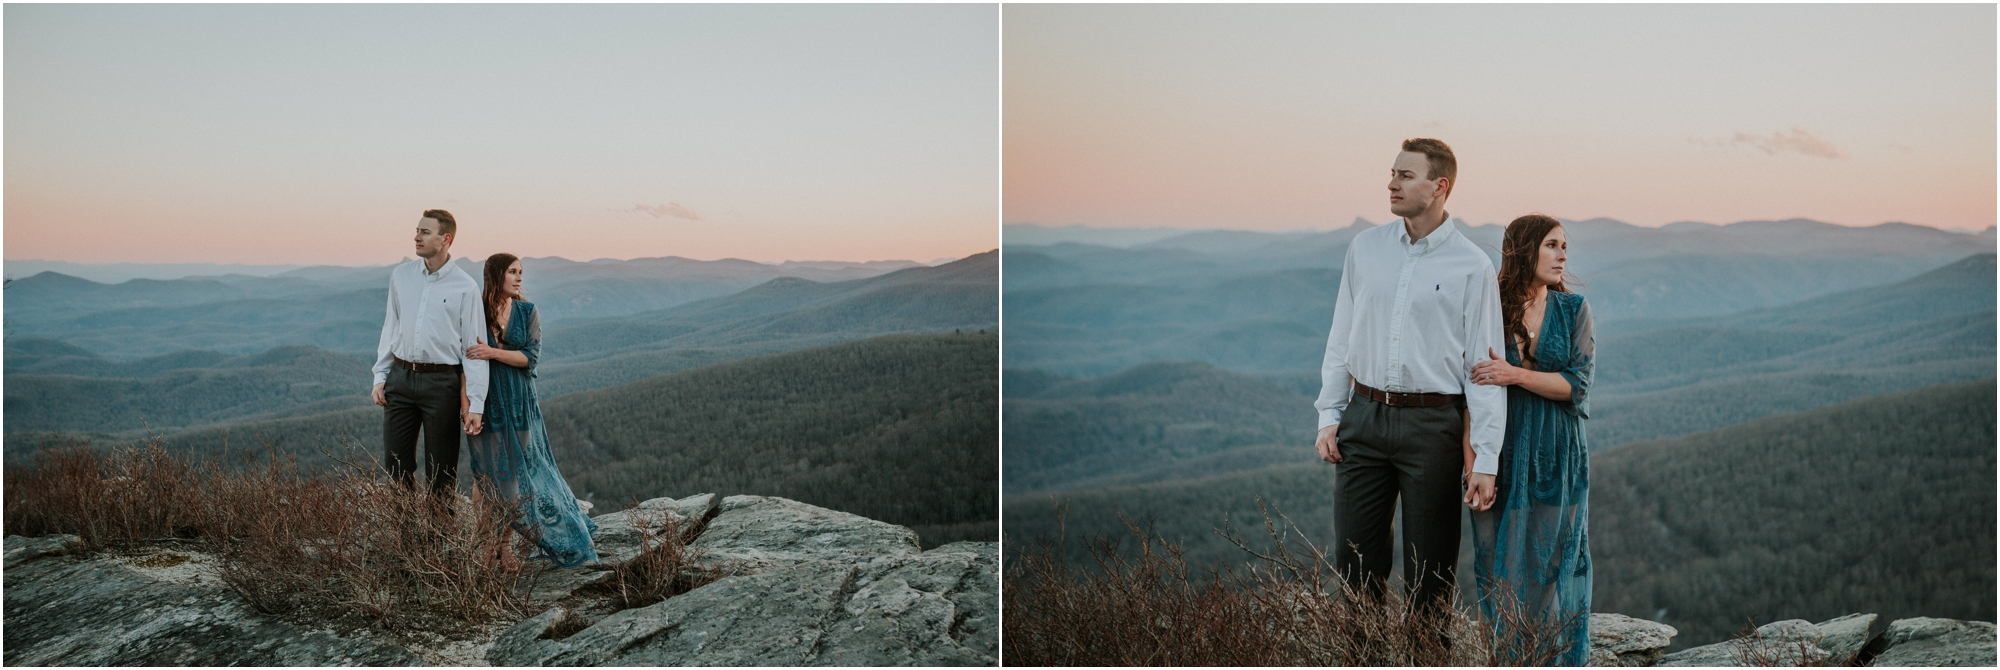 blue-ridge-parkway-engagement-session-north-carolina-boone-blowing-rock-northeast-tennessee-katy-sergent-photography_0031.jpg